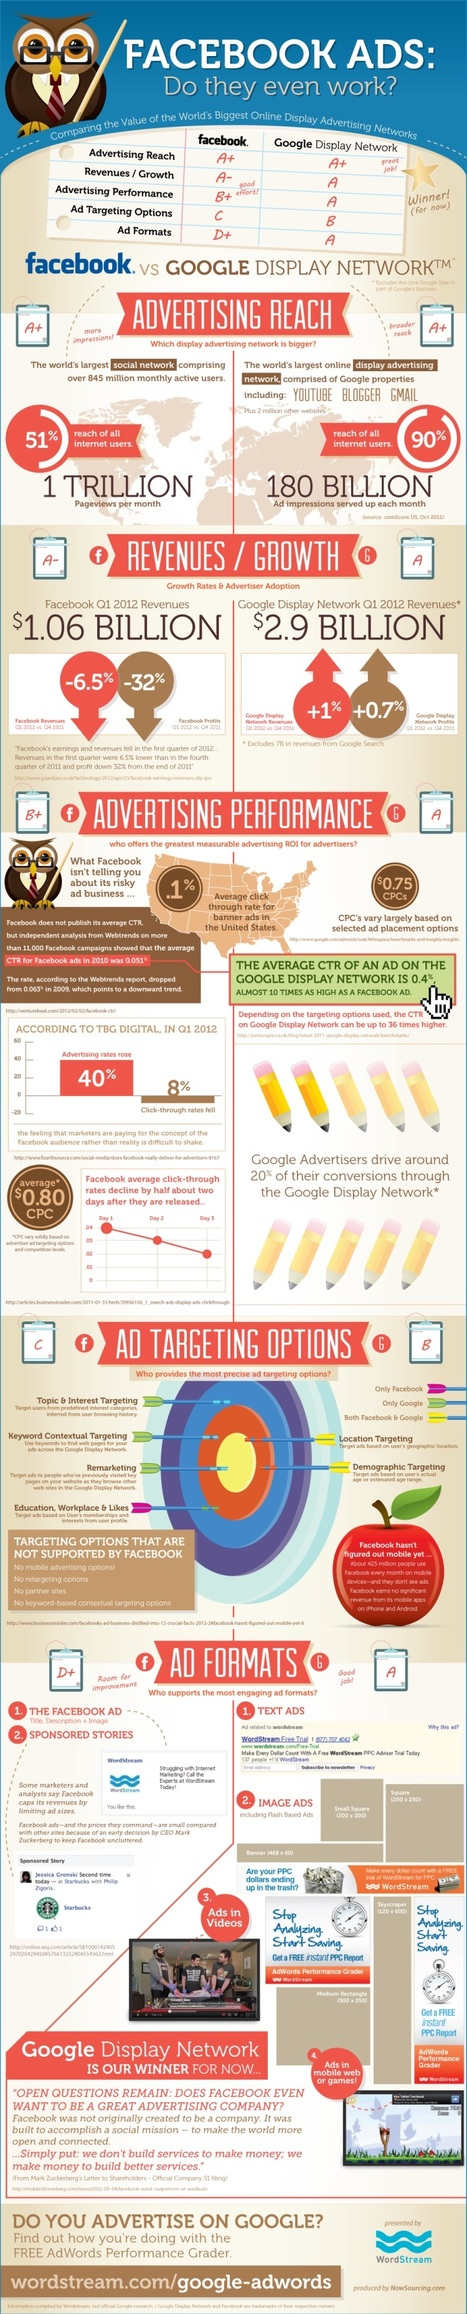 Facebook Ads: Do They Even Work? [Infographic] | Optimisation des médias sociaux | Scoop.it